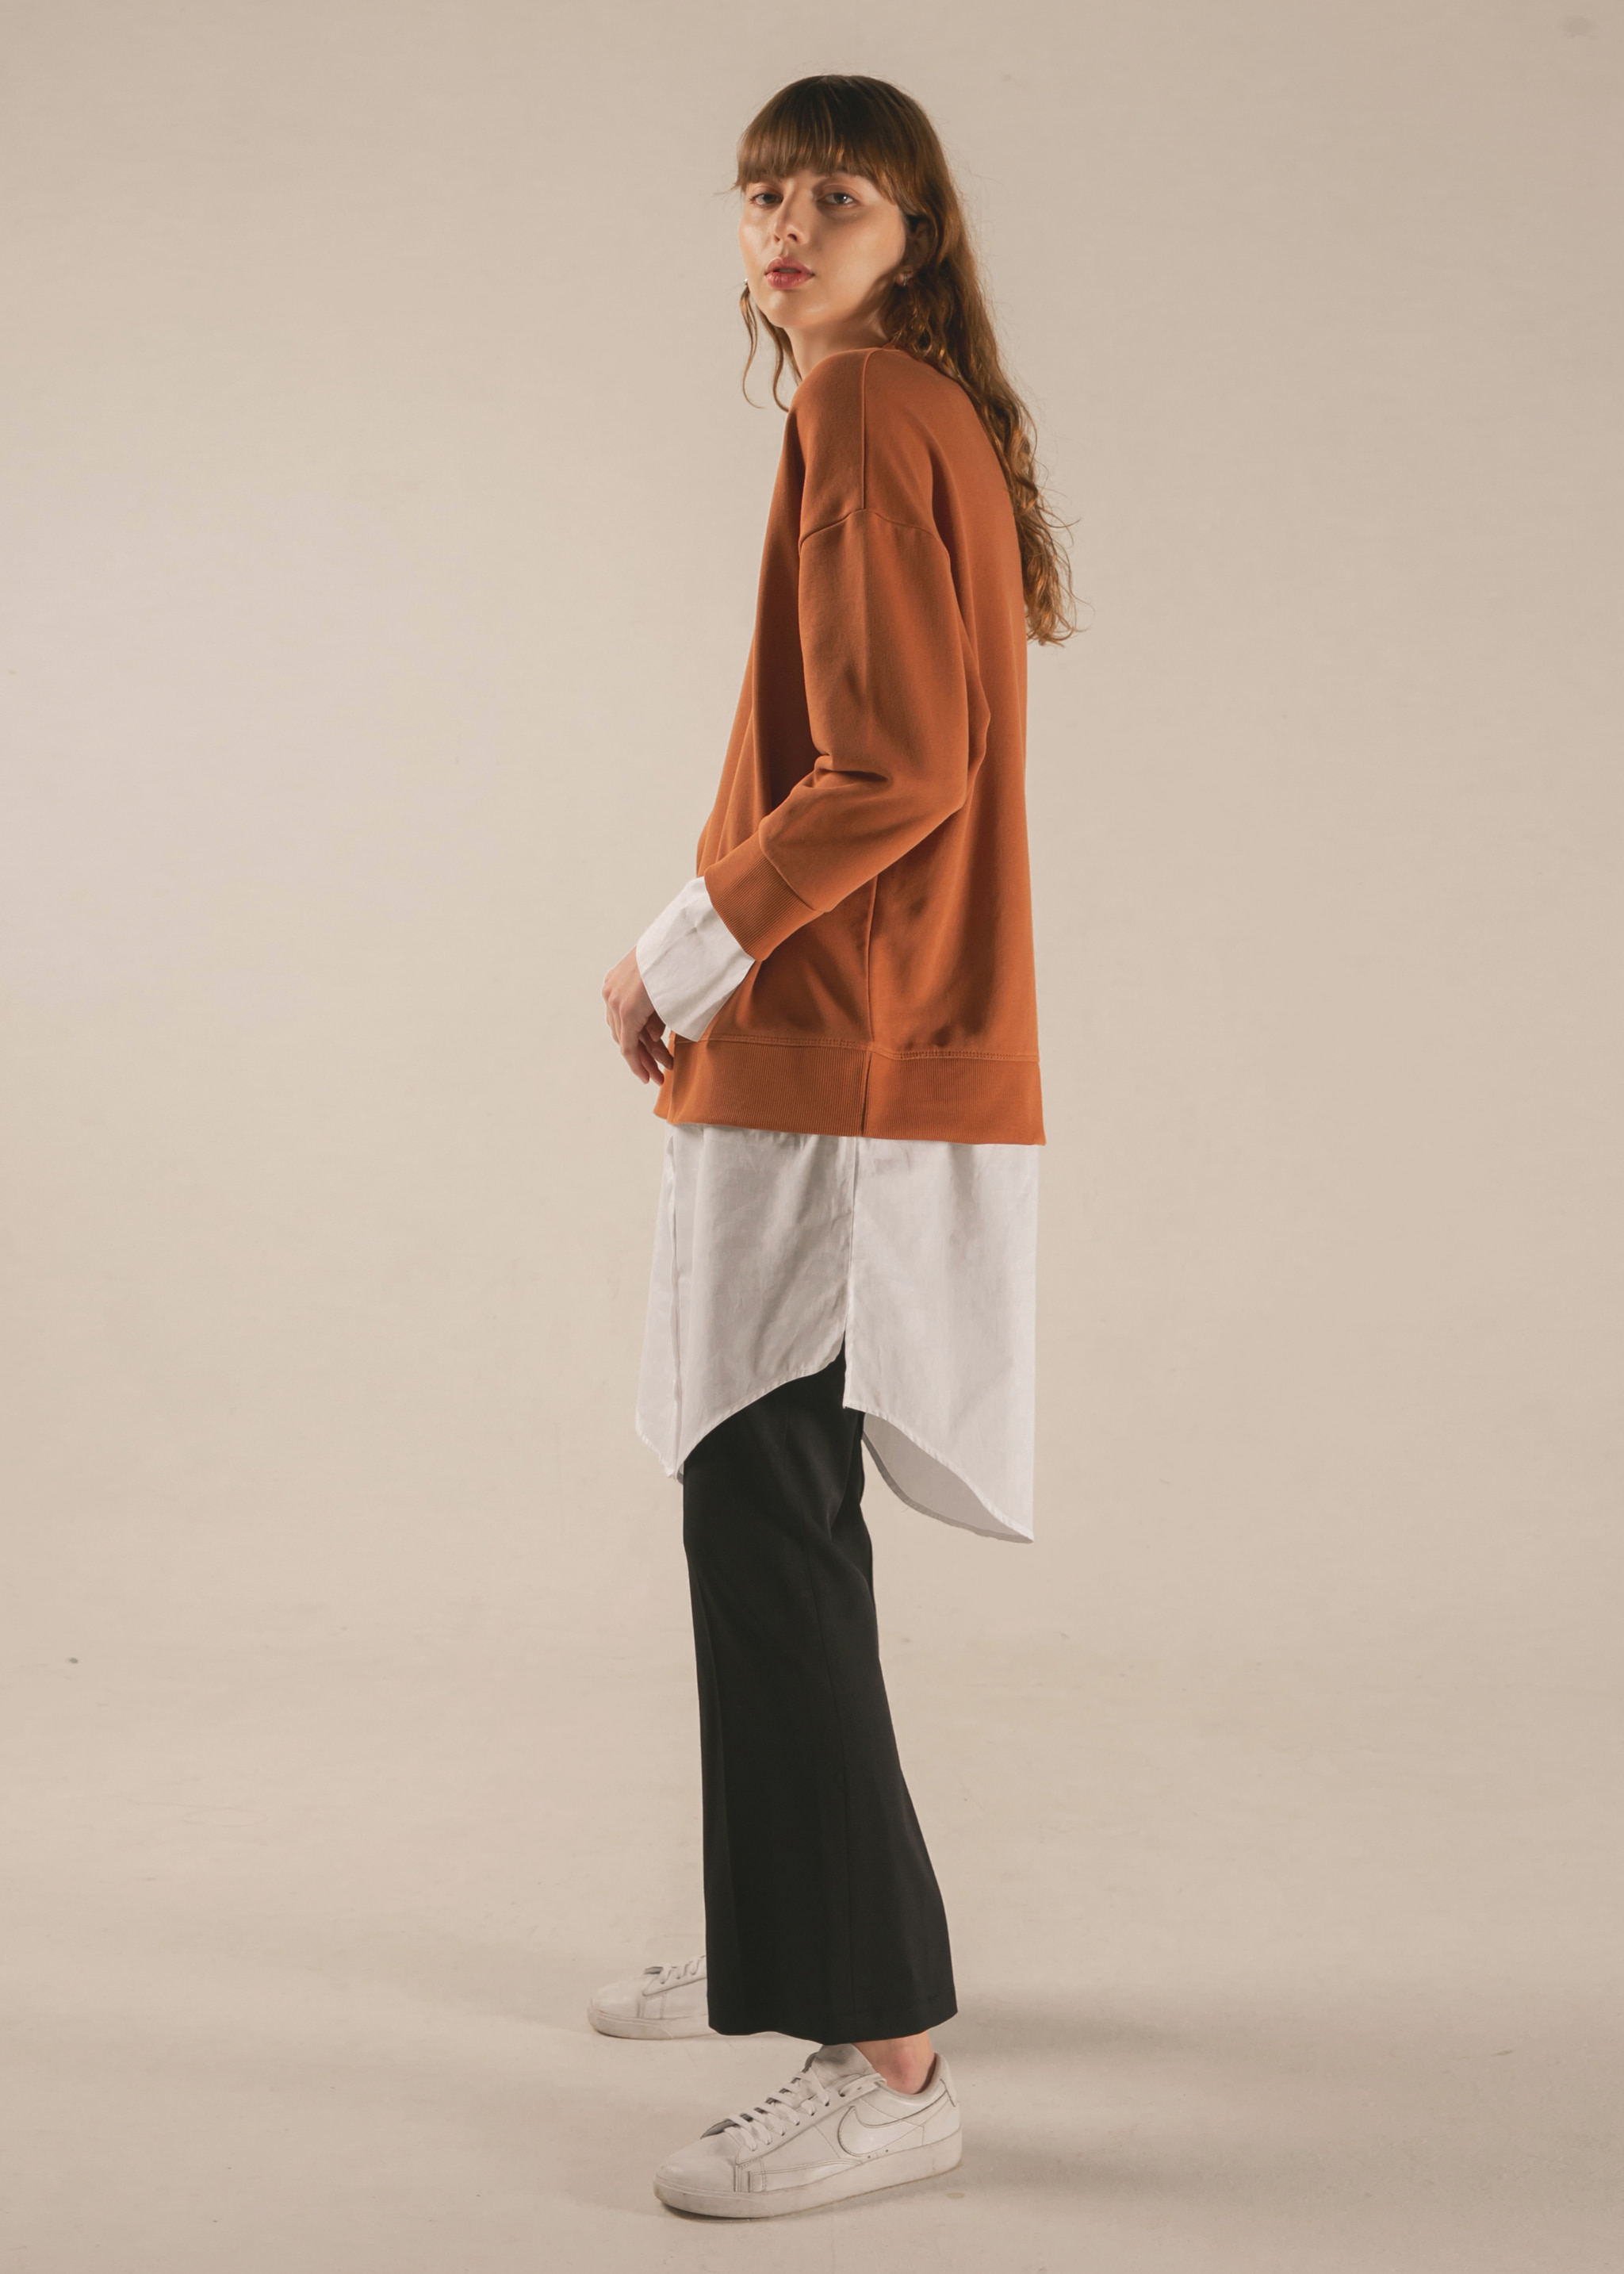 SHIRT LAYERED SWEATSHIRT (ORANGE BROWN)